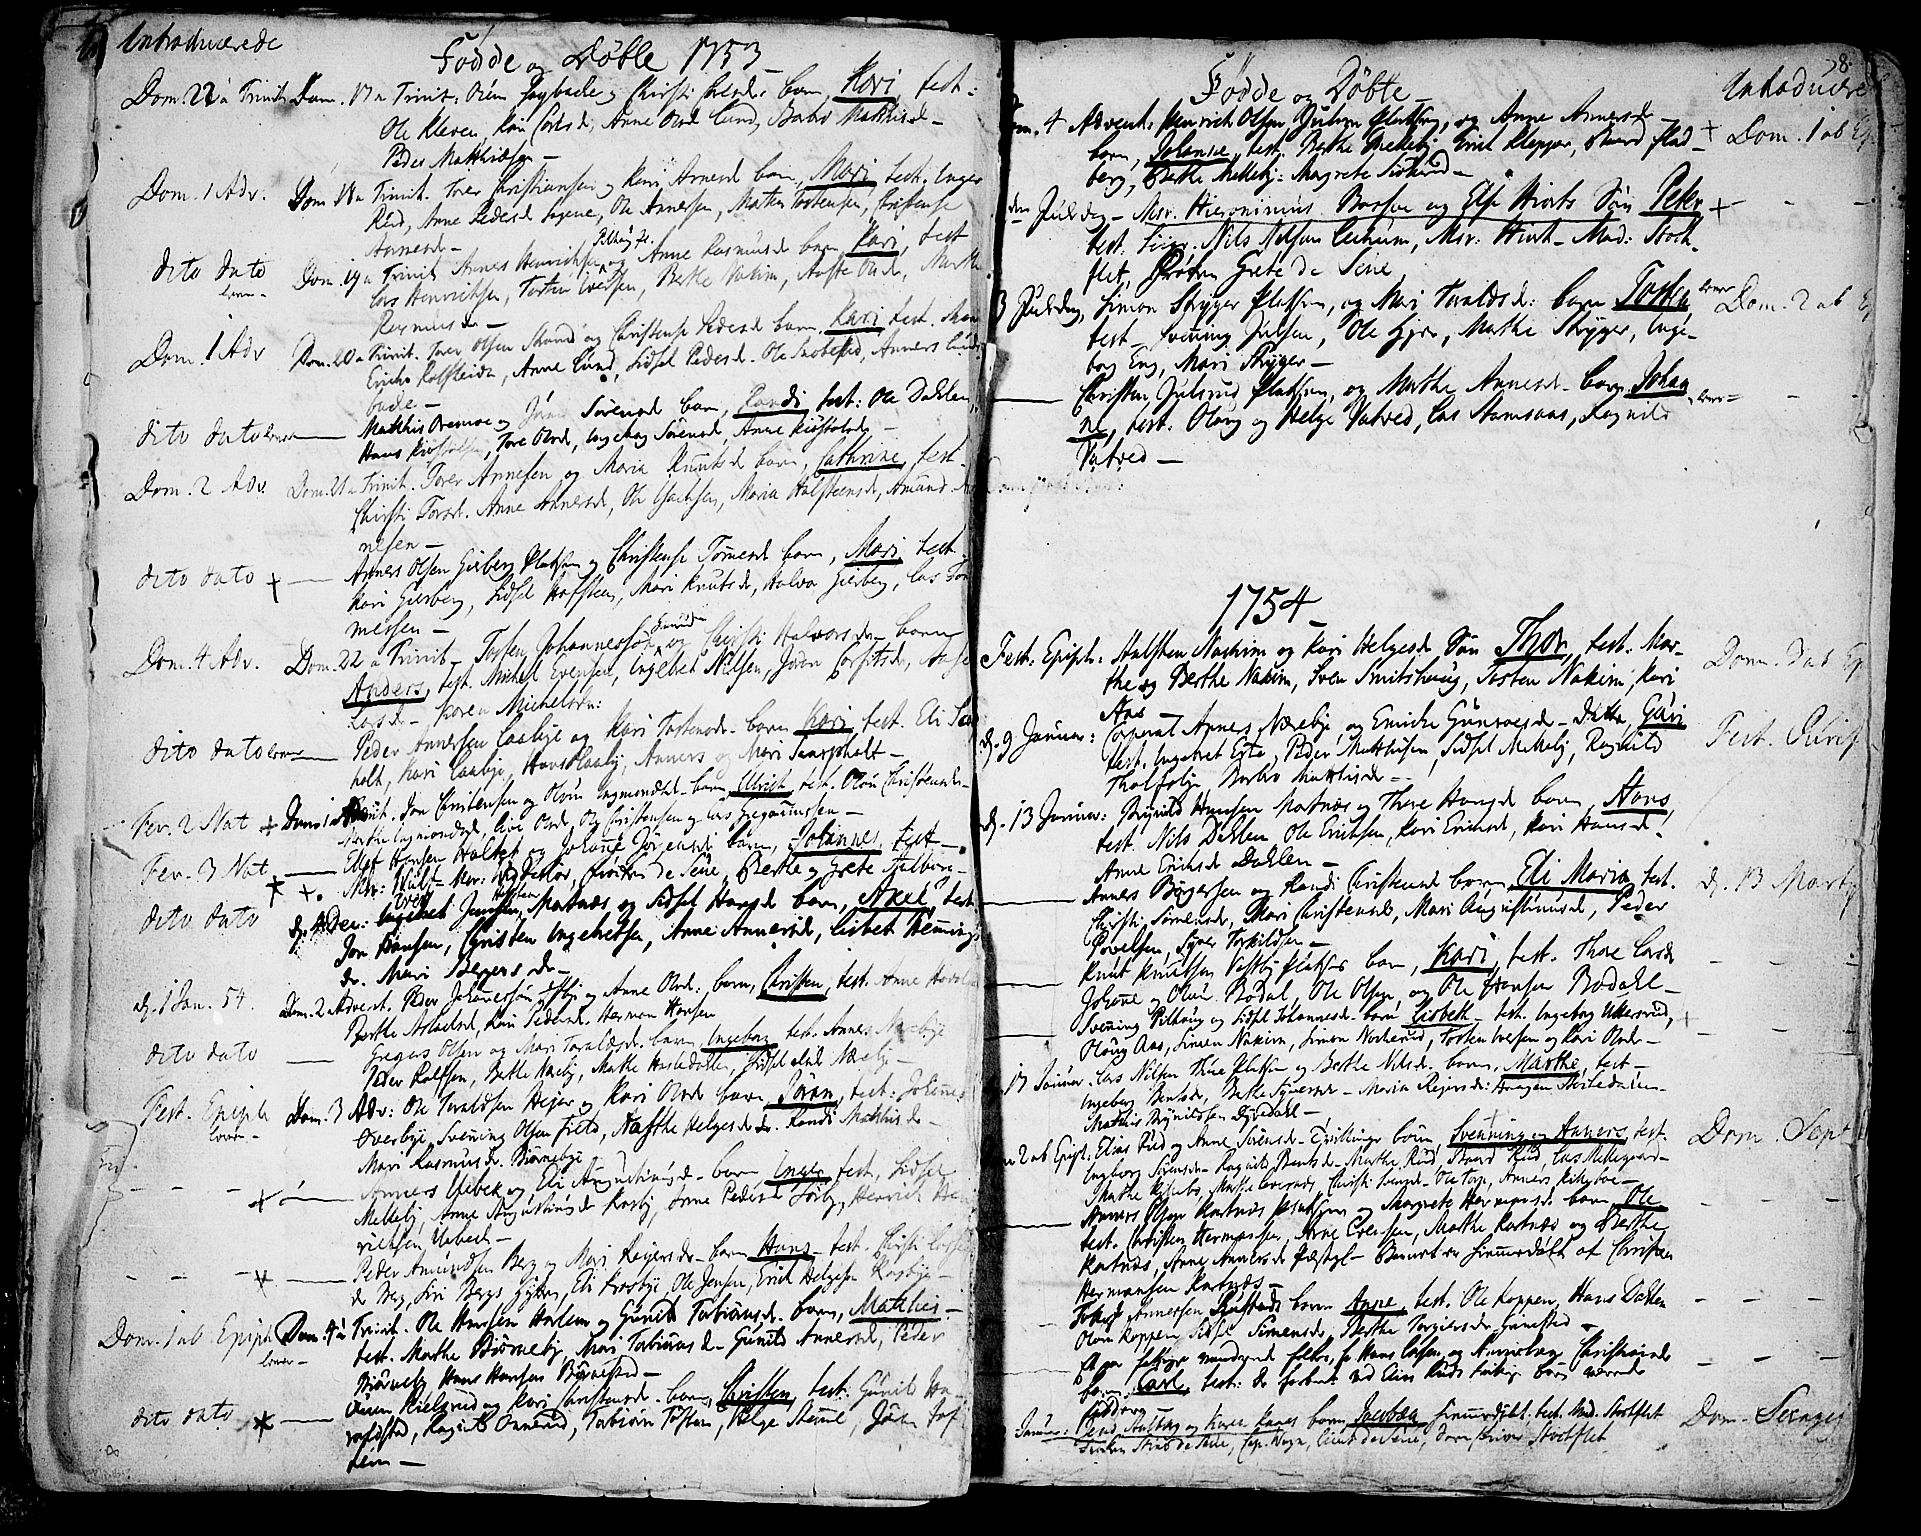 SAO, Rakkestad prestekontor Kirkebøker, F/Fa/L0003: Parish register (official) no. I 3, 1752-1777, p. 8